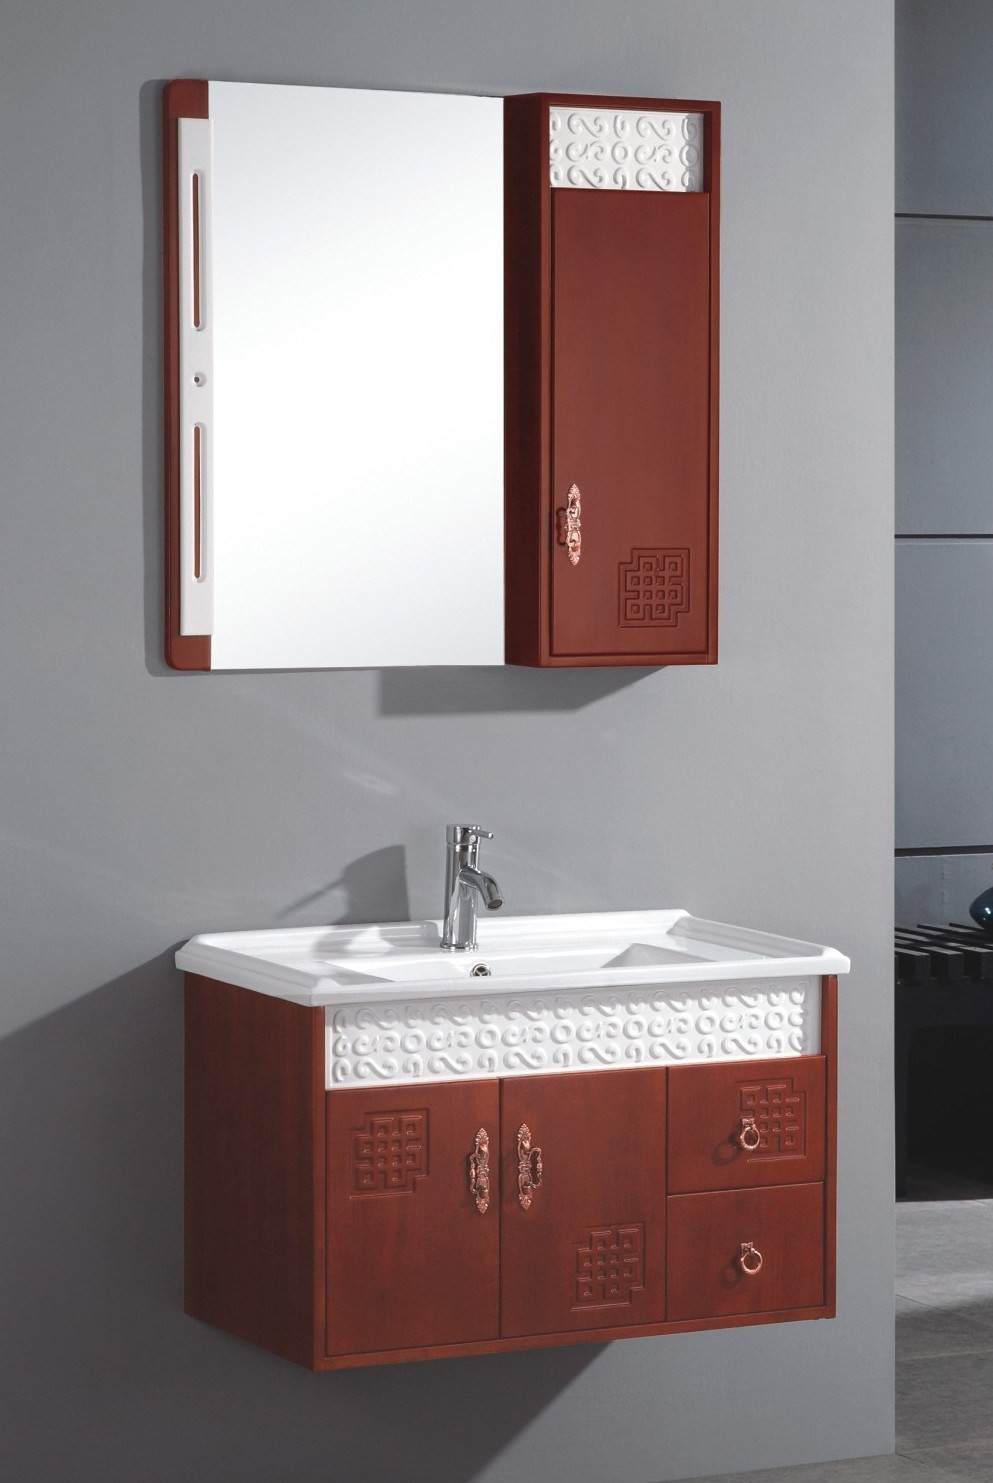 Best ideas about Wall Mounted Bathroom Cabinets . Save or Pin China Wall Mounted Single Sink Wooden Bathrooom Vanity Now.